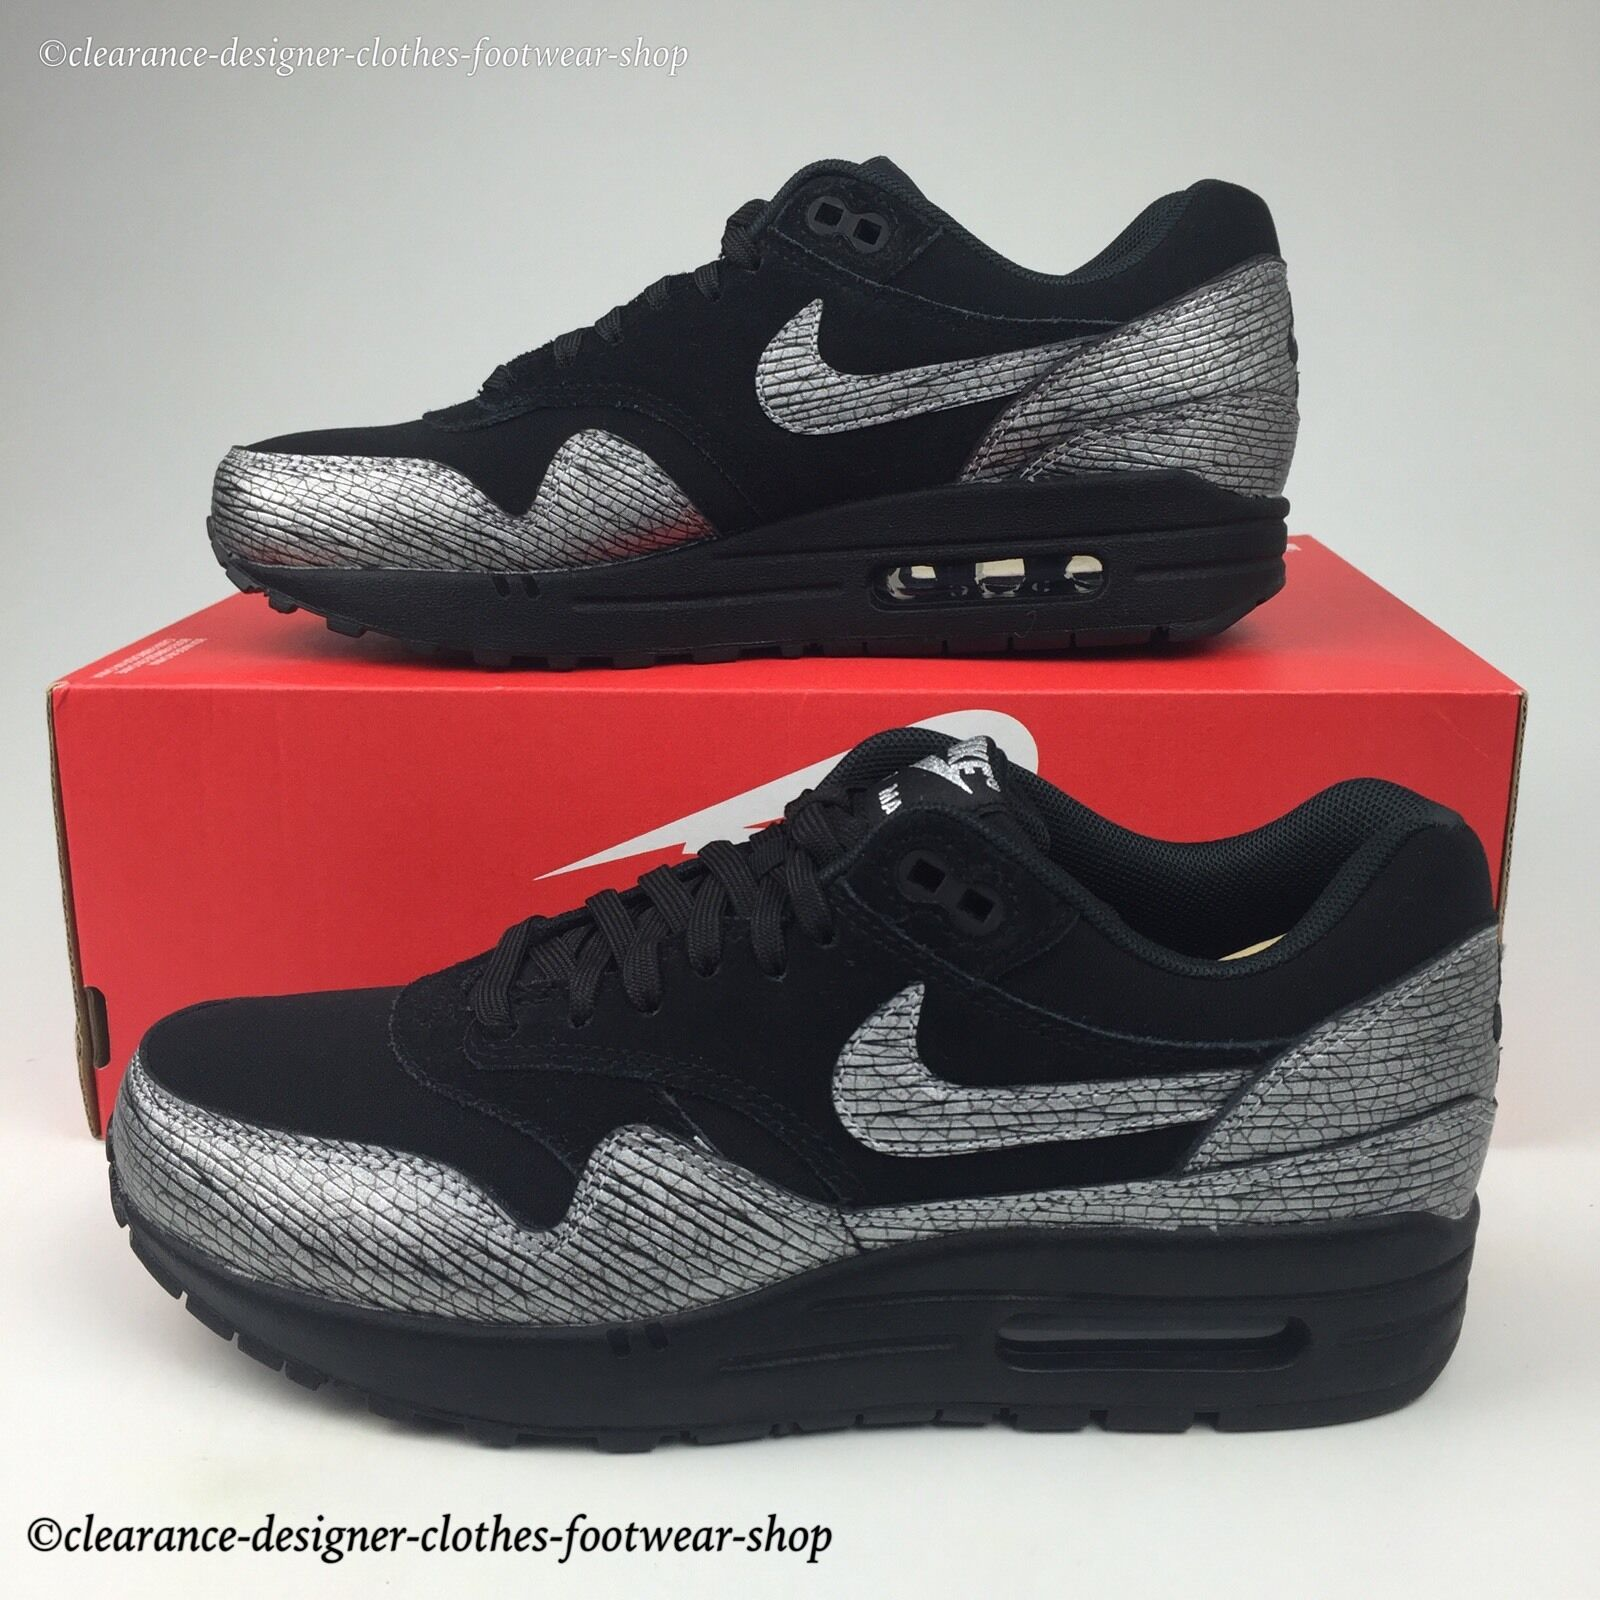 NIKE AIR MAX 1 PREMIUM CASUAL TRAINERS Damenschuhe GIRLS LADIES CASUAL PREMIUM Schuhe UK 5 542a2e